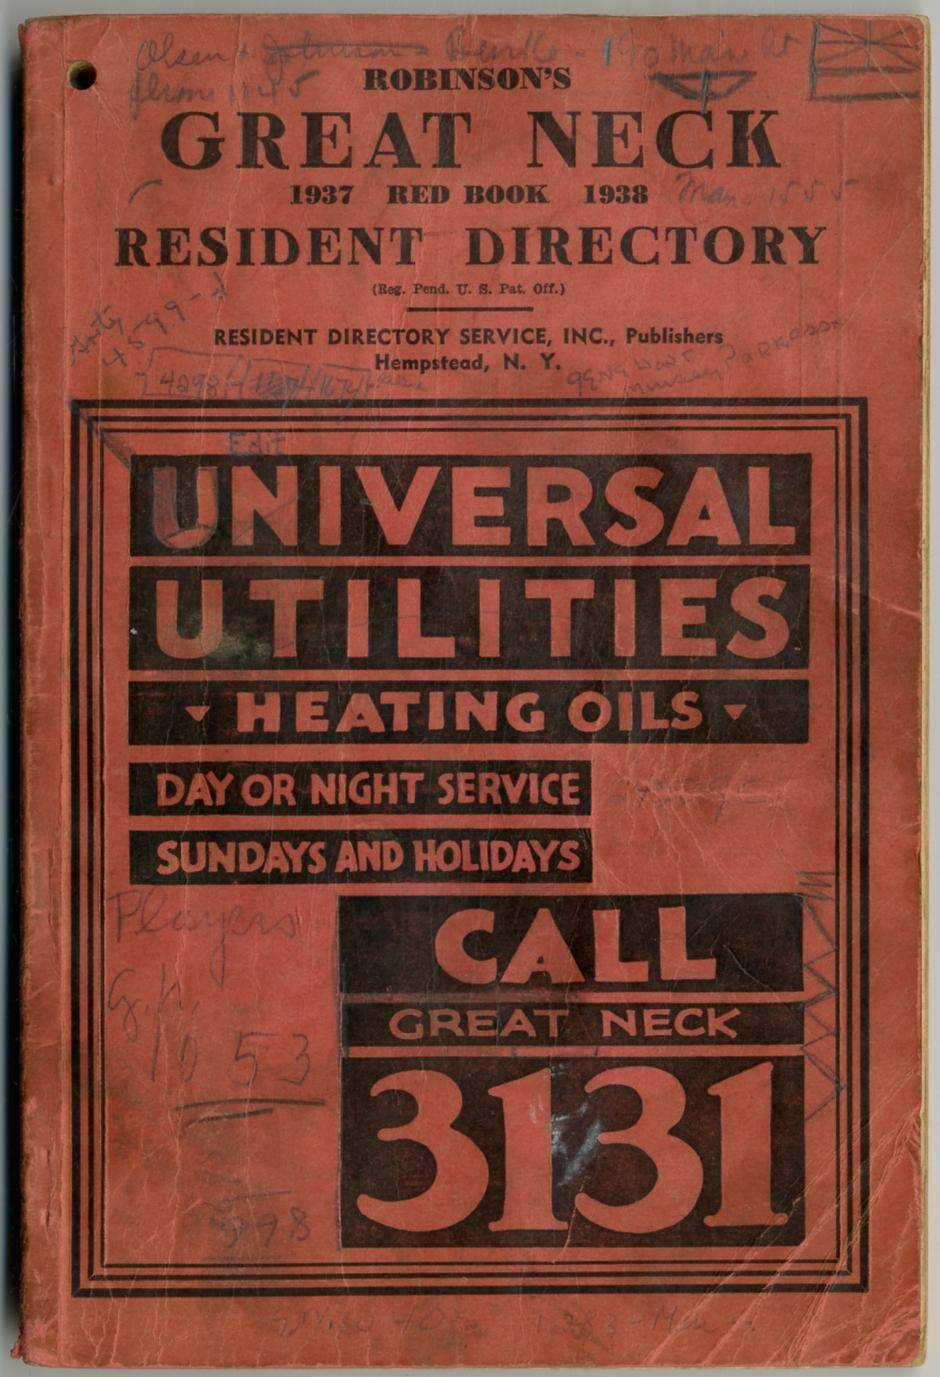 [Business and Phone Directory]: Robinson's Great Neck 1937-1938 Red Book Resident Directory   [Near Fine] [Softcover]